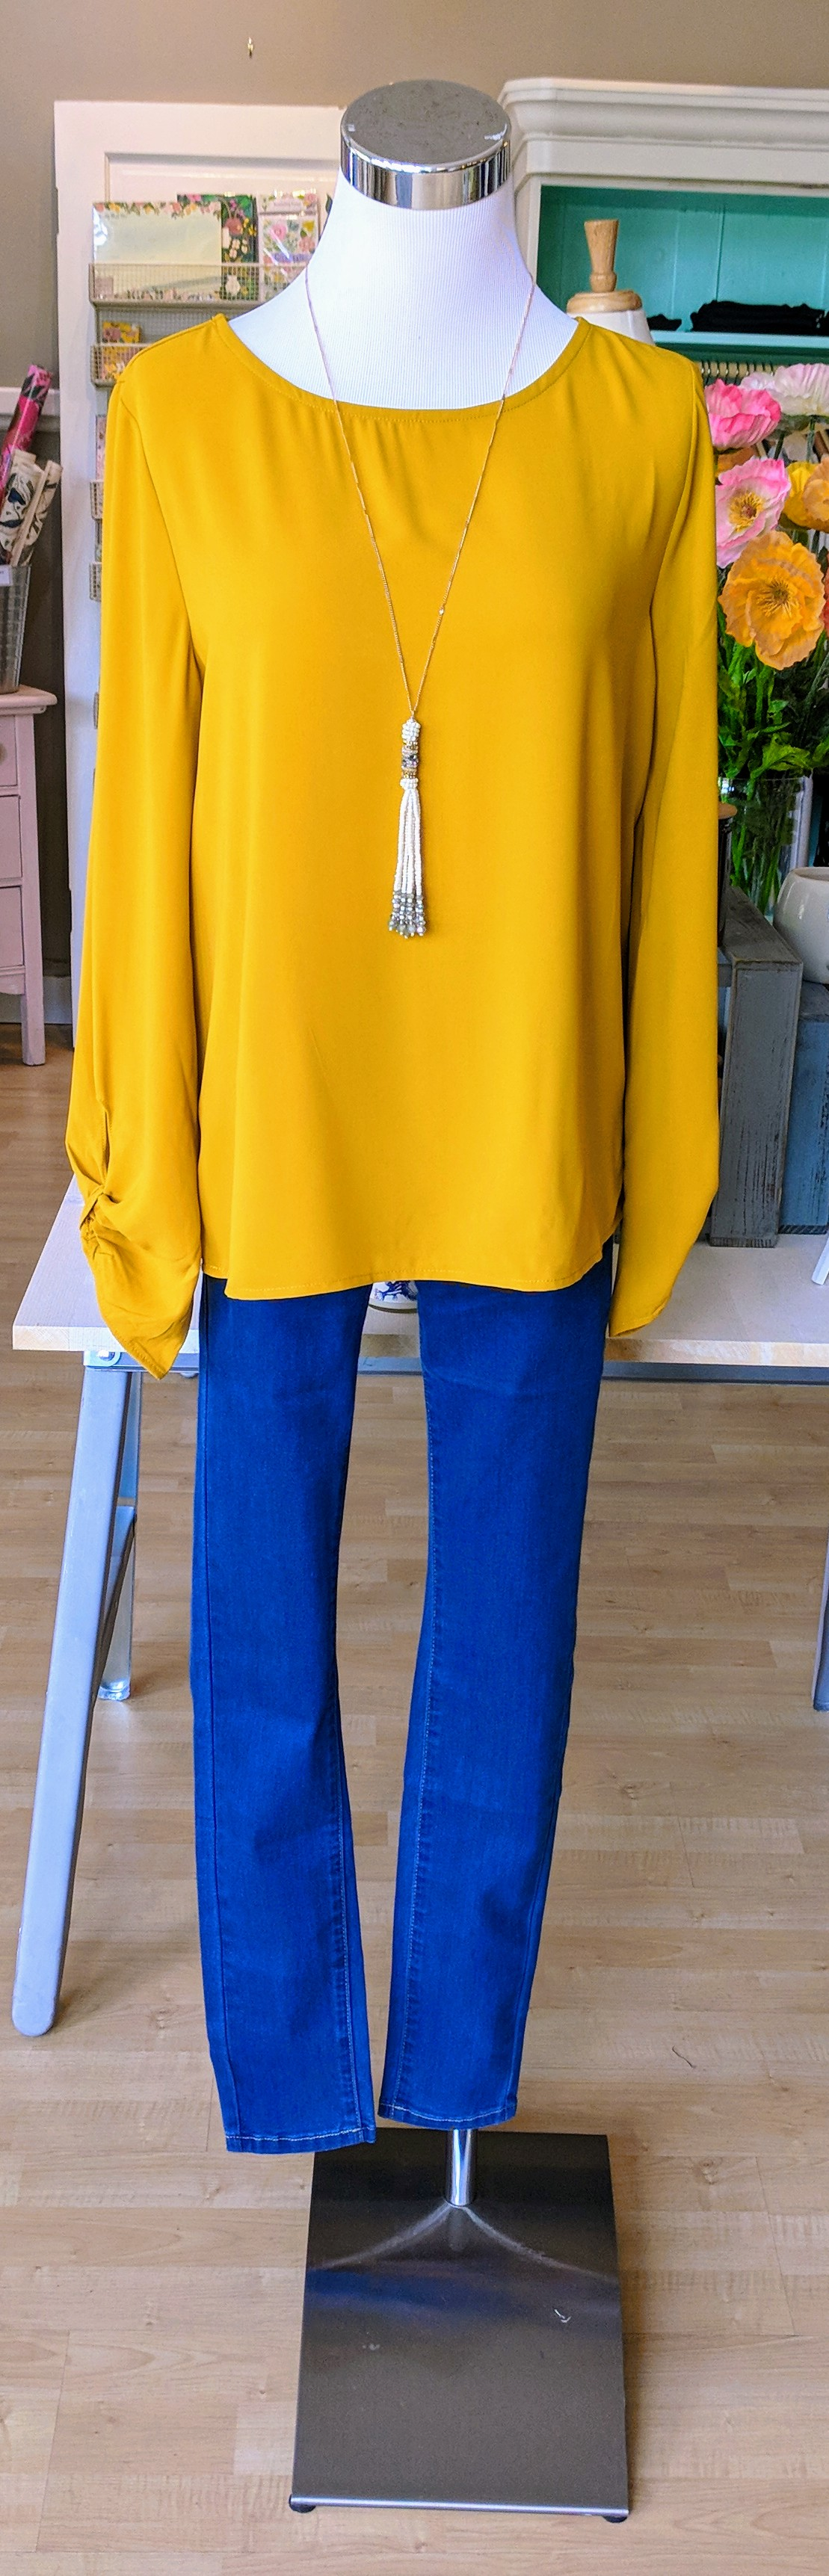 Mustard yellow long sleeve top paired with new Kancan high waist denim.